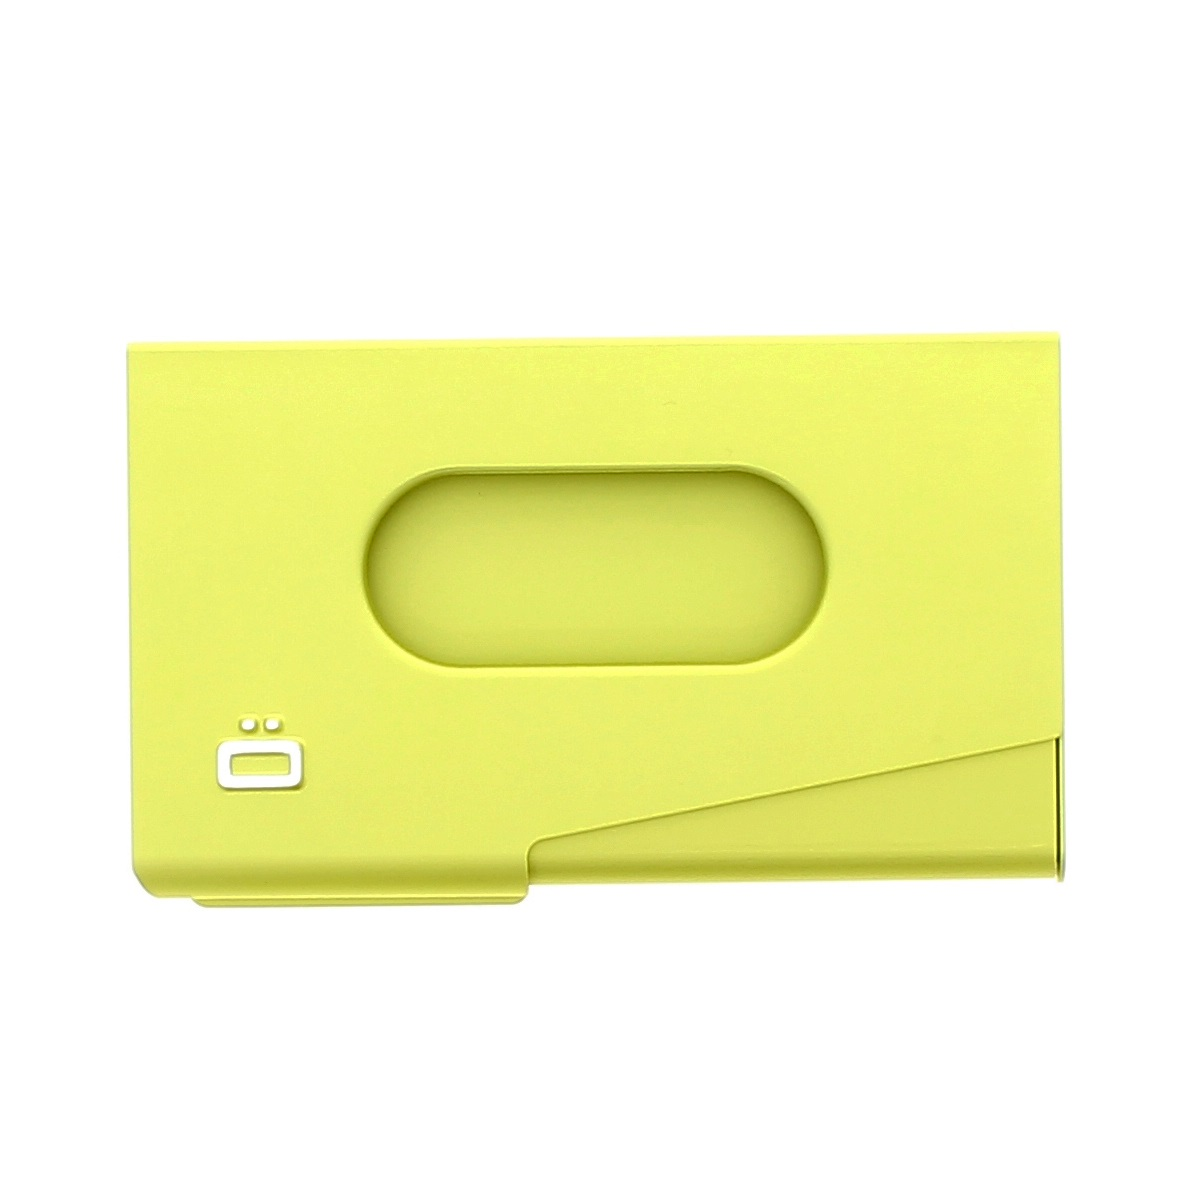 OGON Aluminum Business card holder One Touch - Green Lime